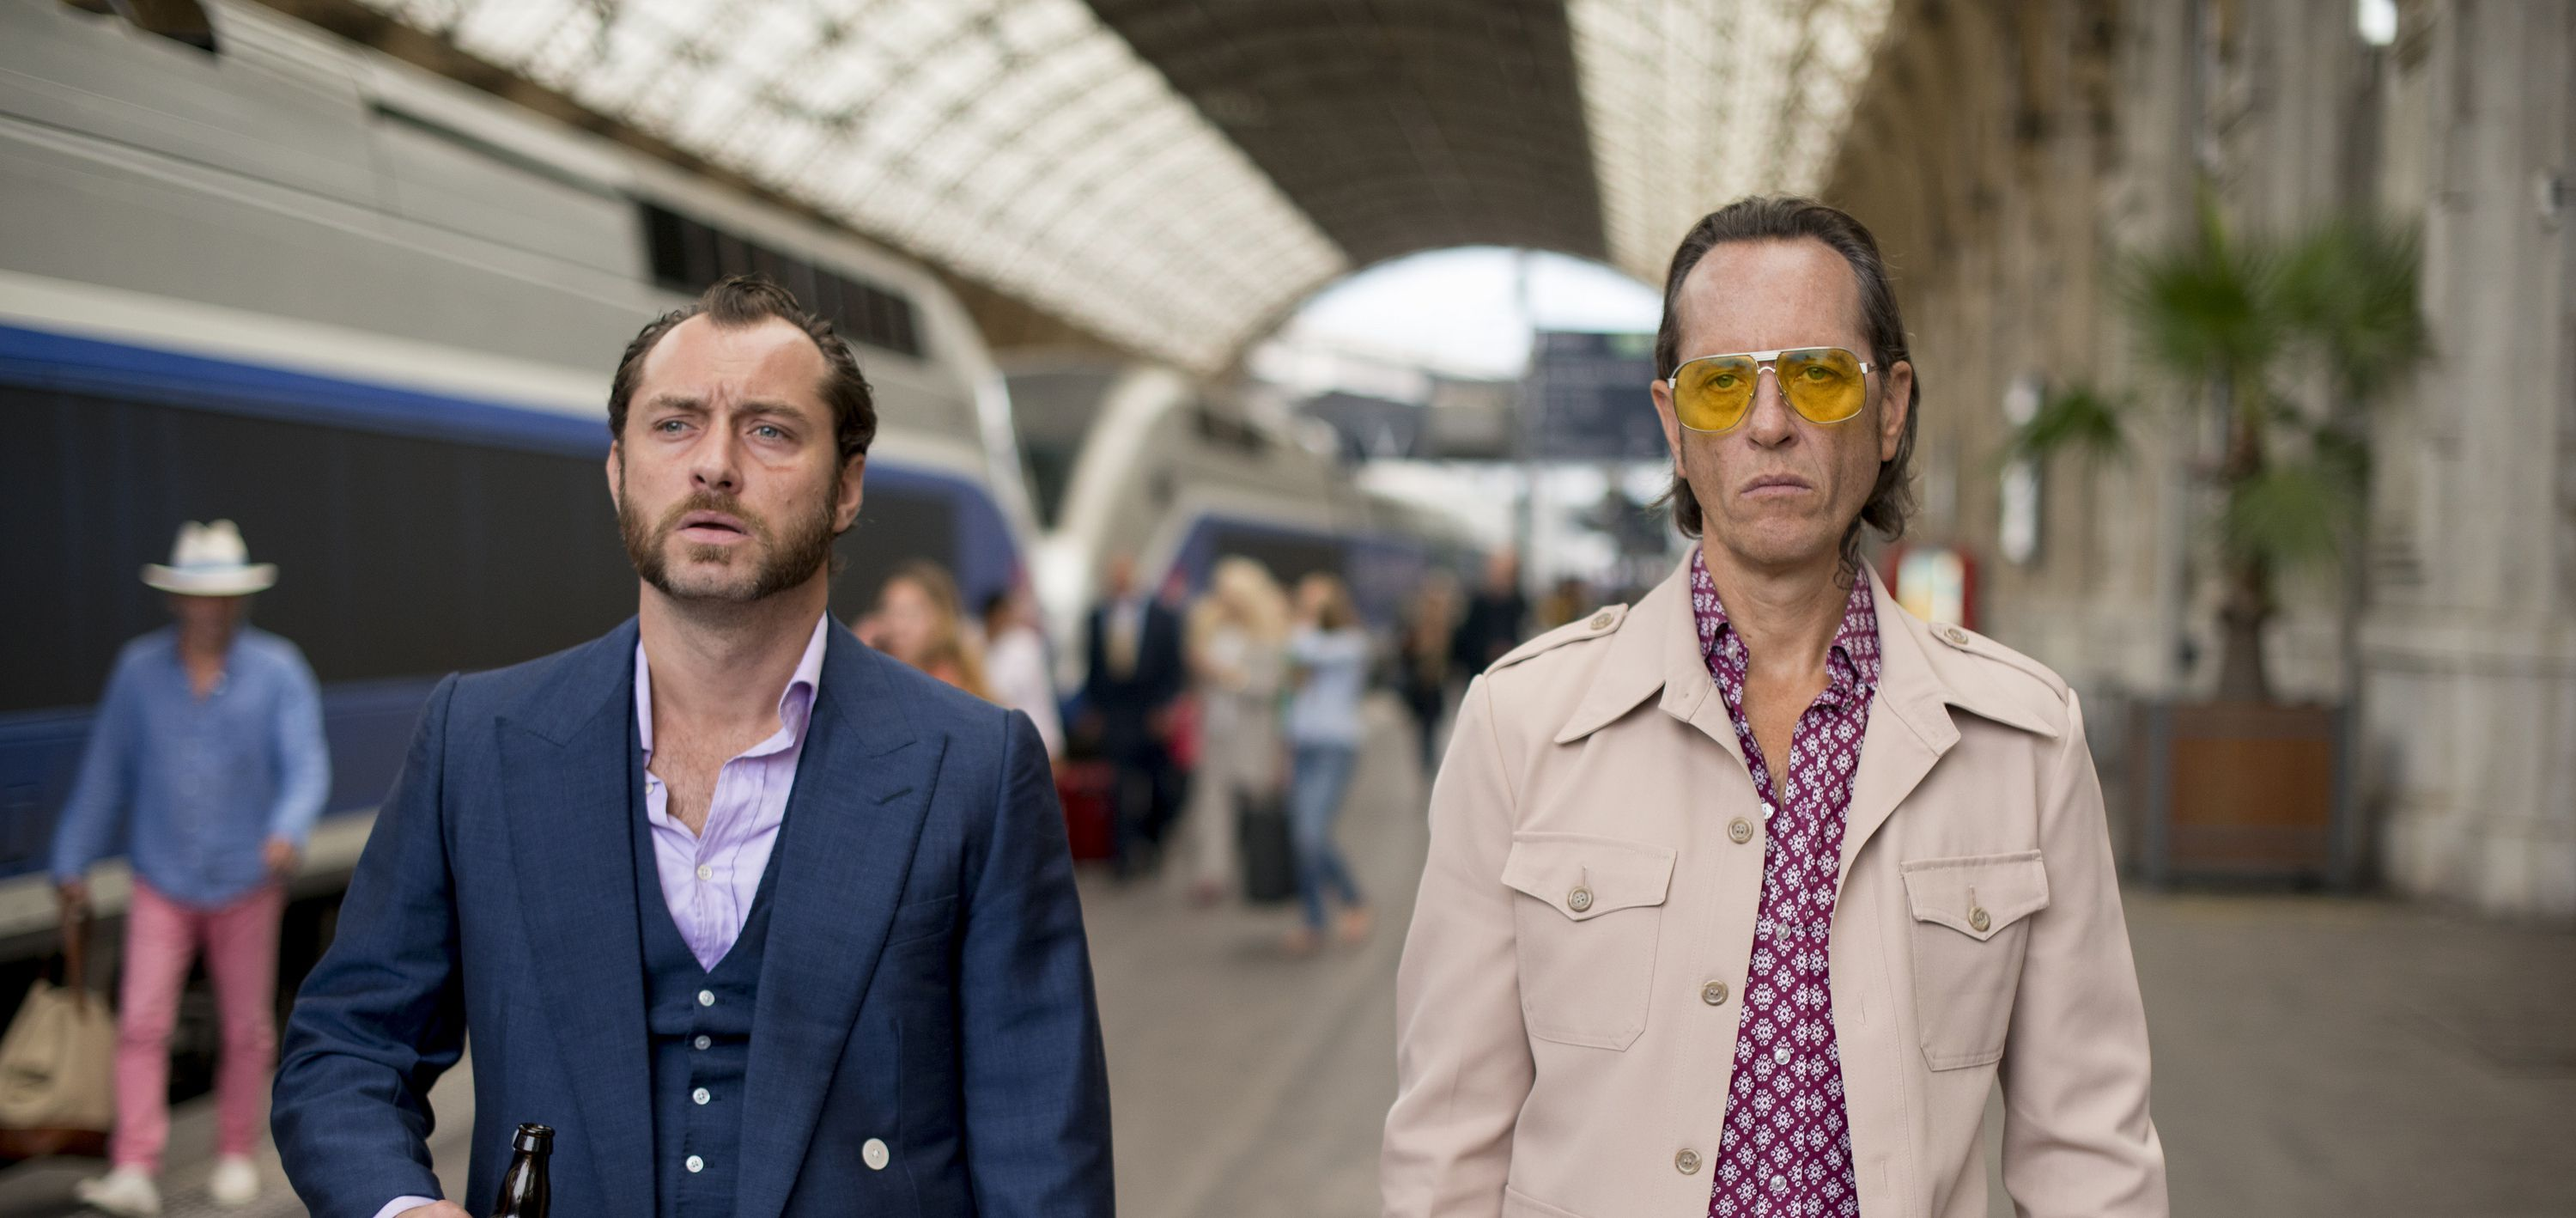 An image from Dom Hemingway